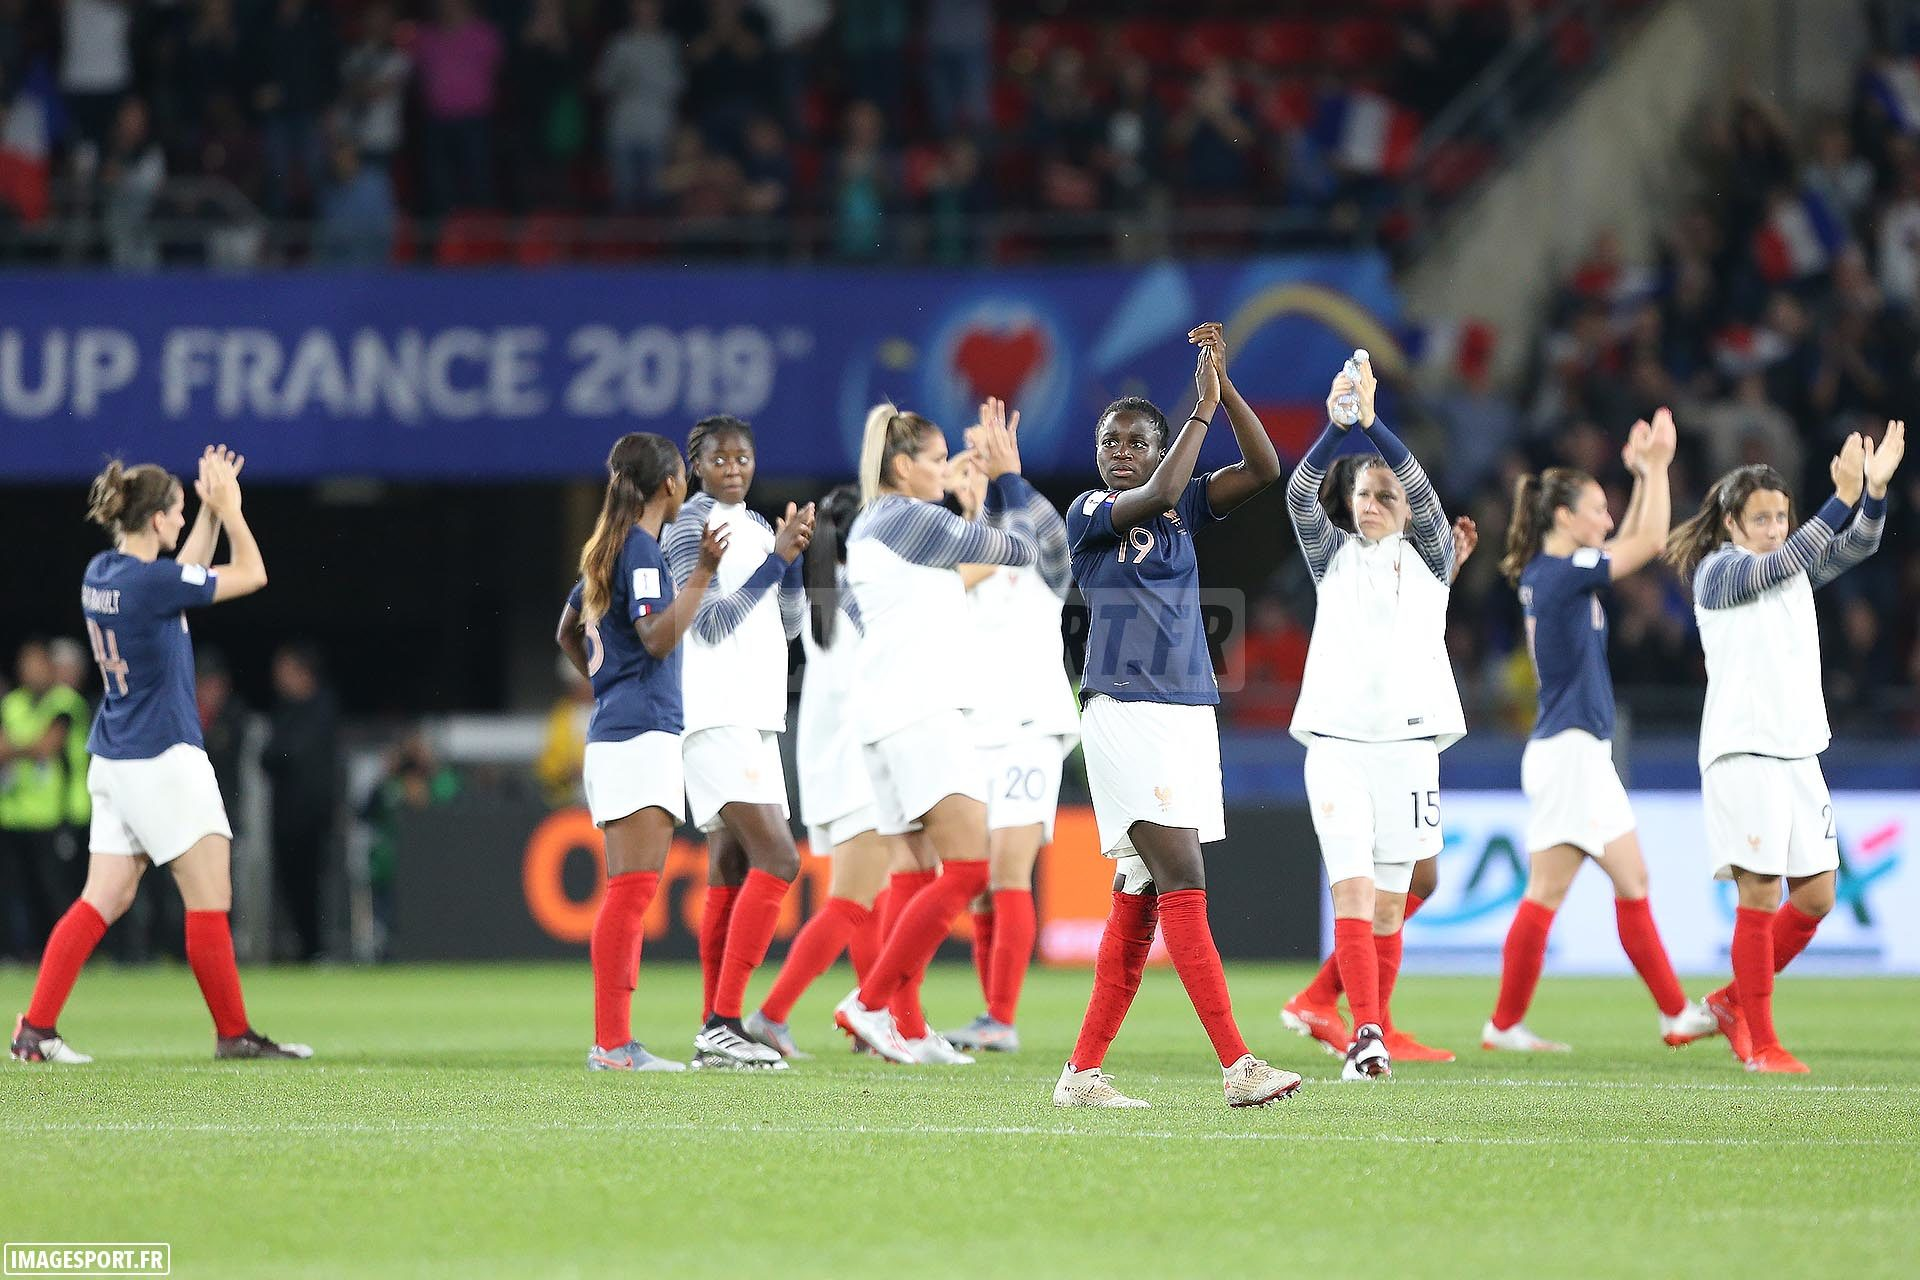 coupe-du-monde-19-nigeria-france_32